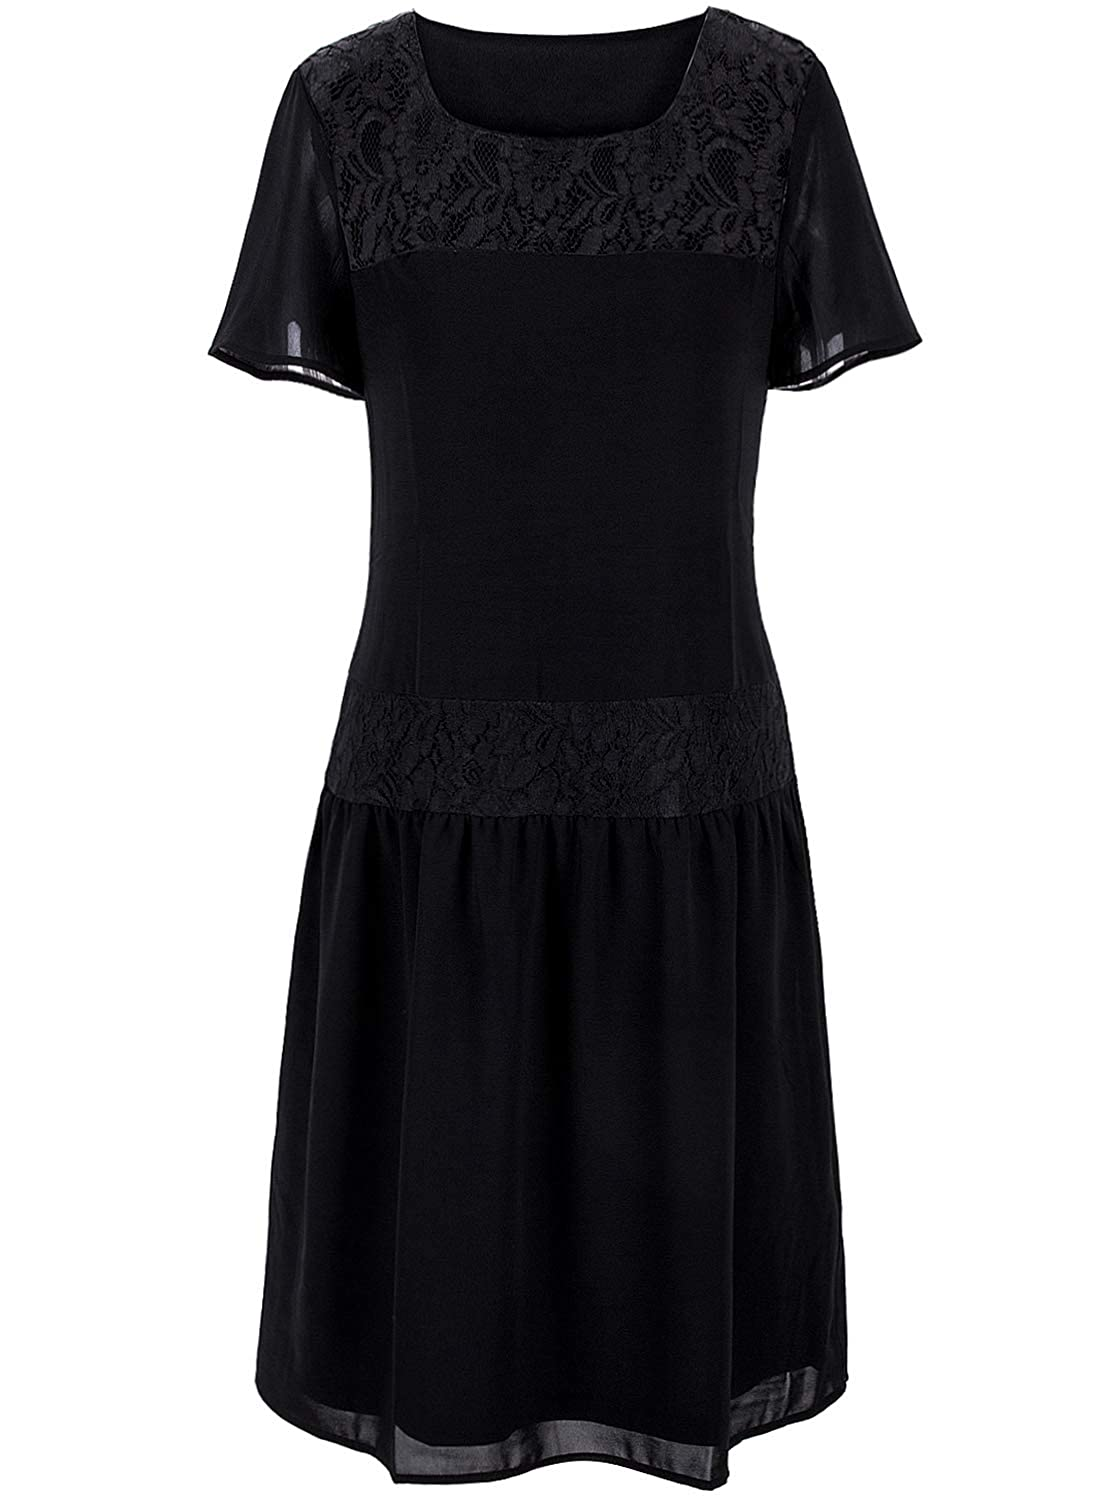 1920s Fashion & Clothing | Roaring 20s Attire VIJIV 1920s Inspired Flapper Dress High Tea Lace Short Sleeves Drop Waist Dress $34.99 AT vintagedancer.com